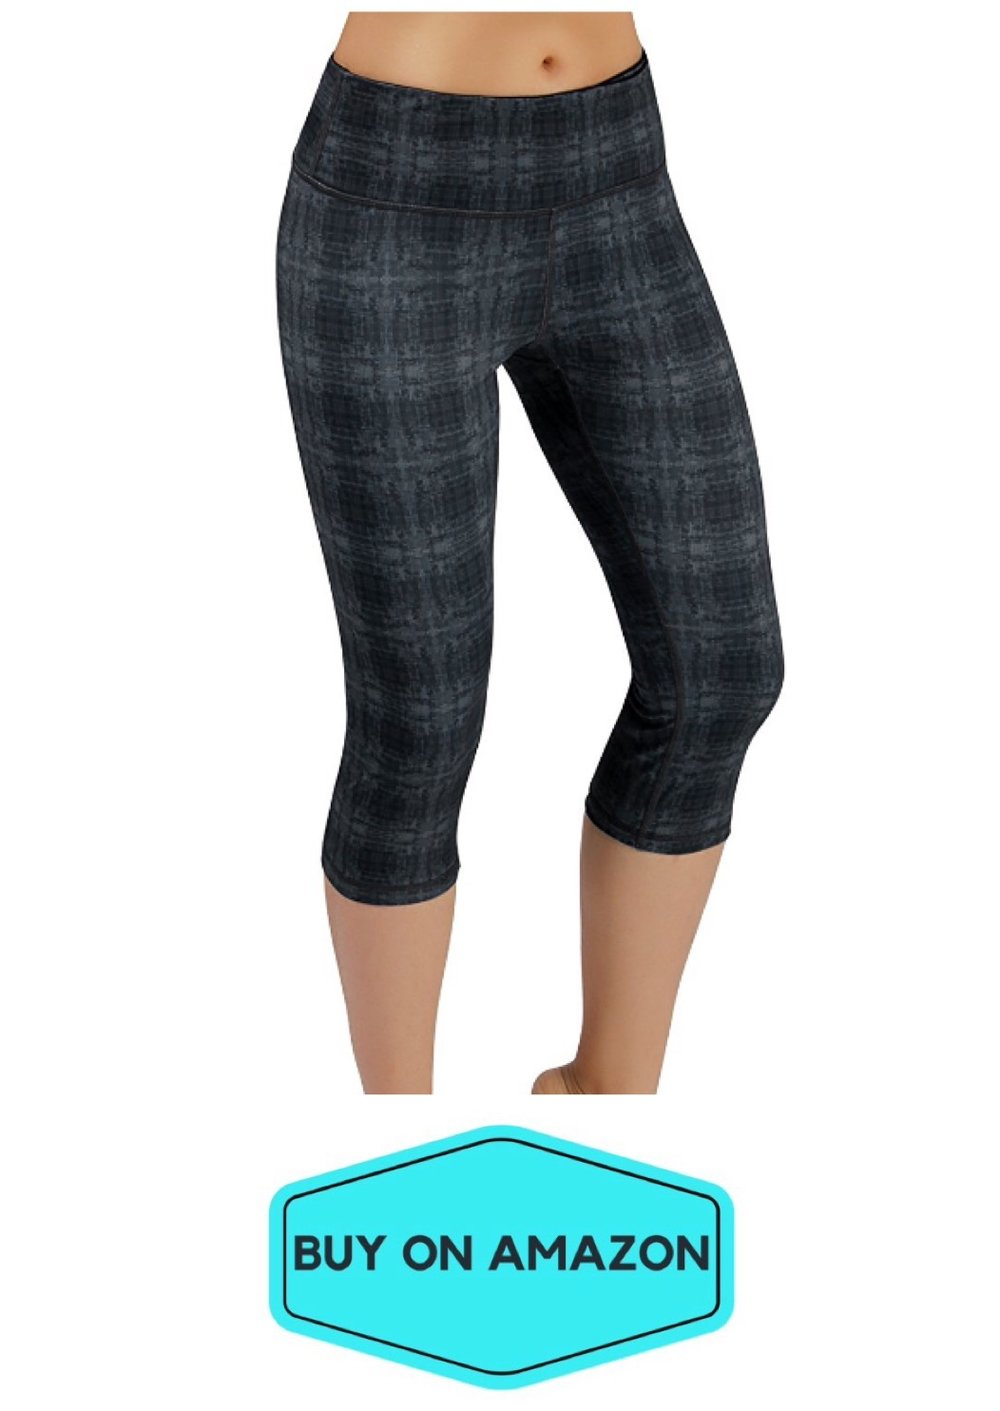 Black/Gray Plaid Capri Leggings